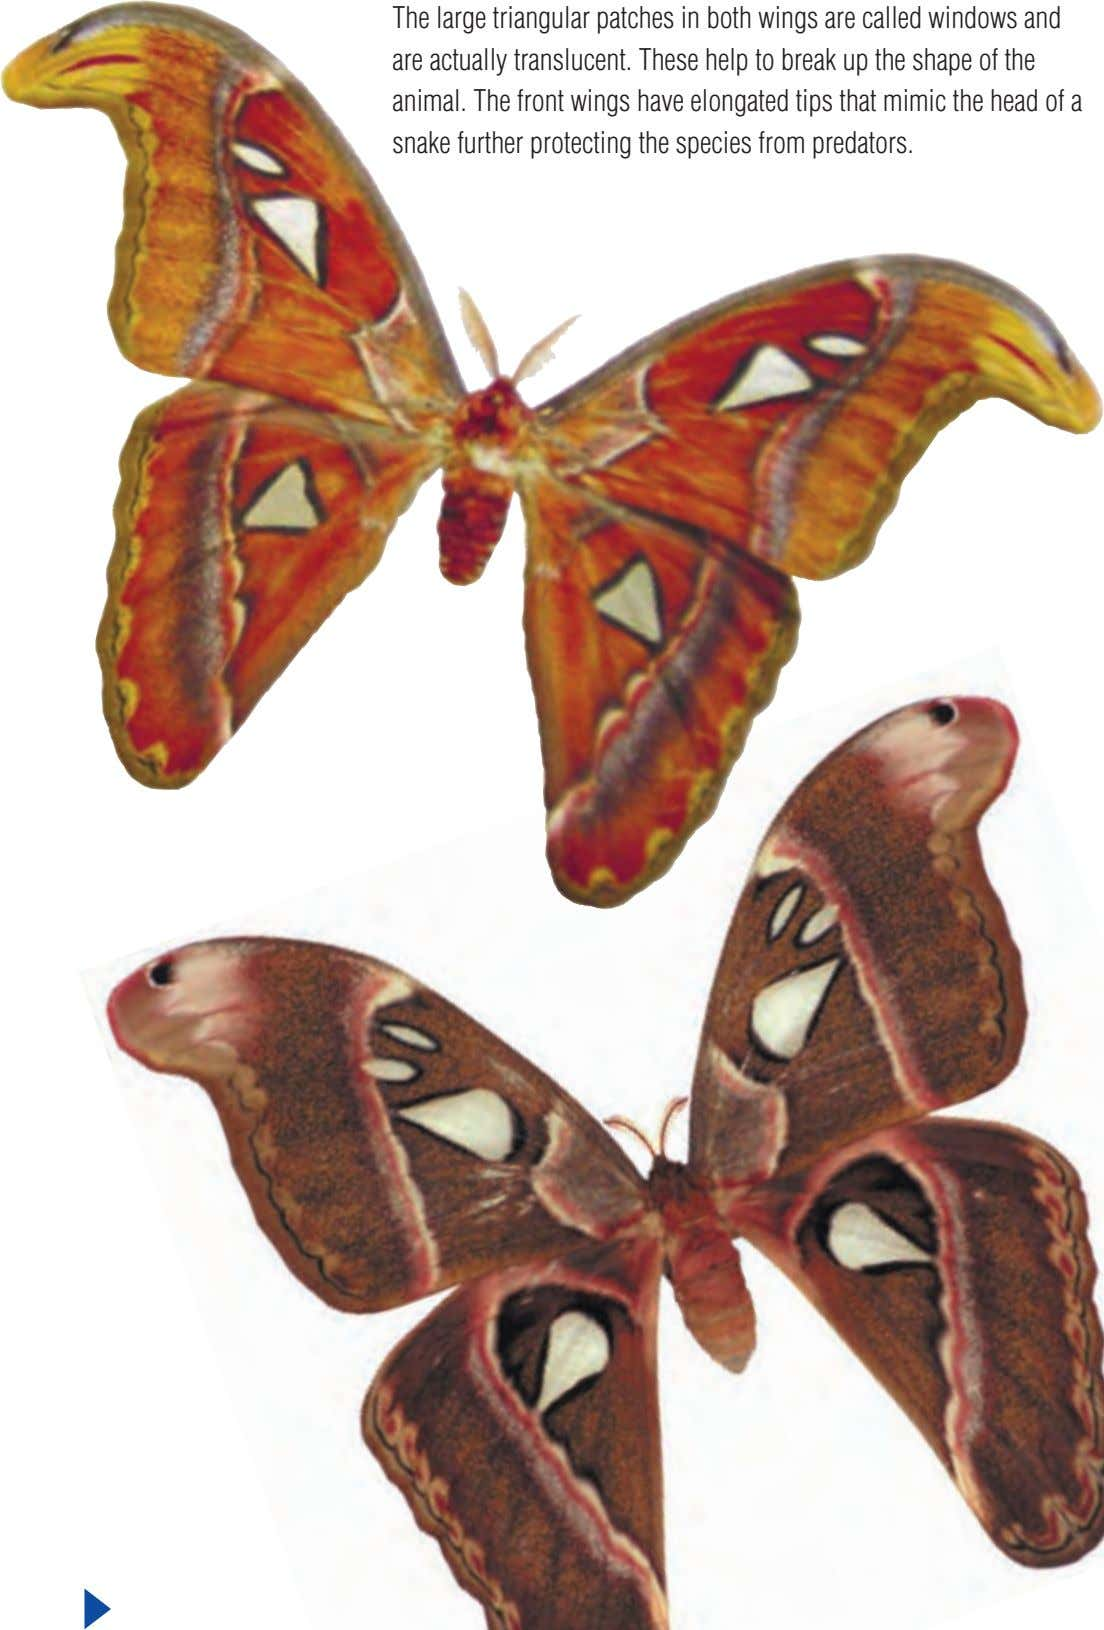 The large triangular patches in both wings are called windows and are actually translucent. These